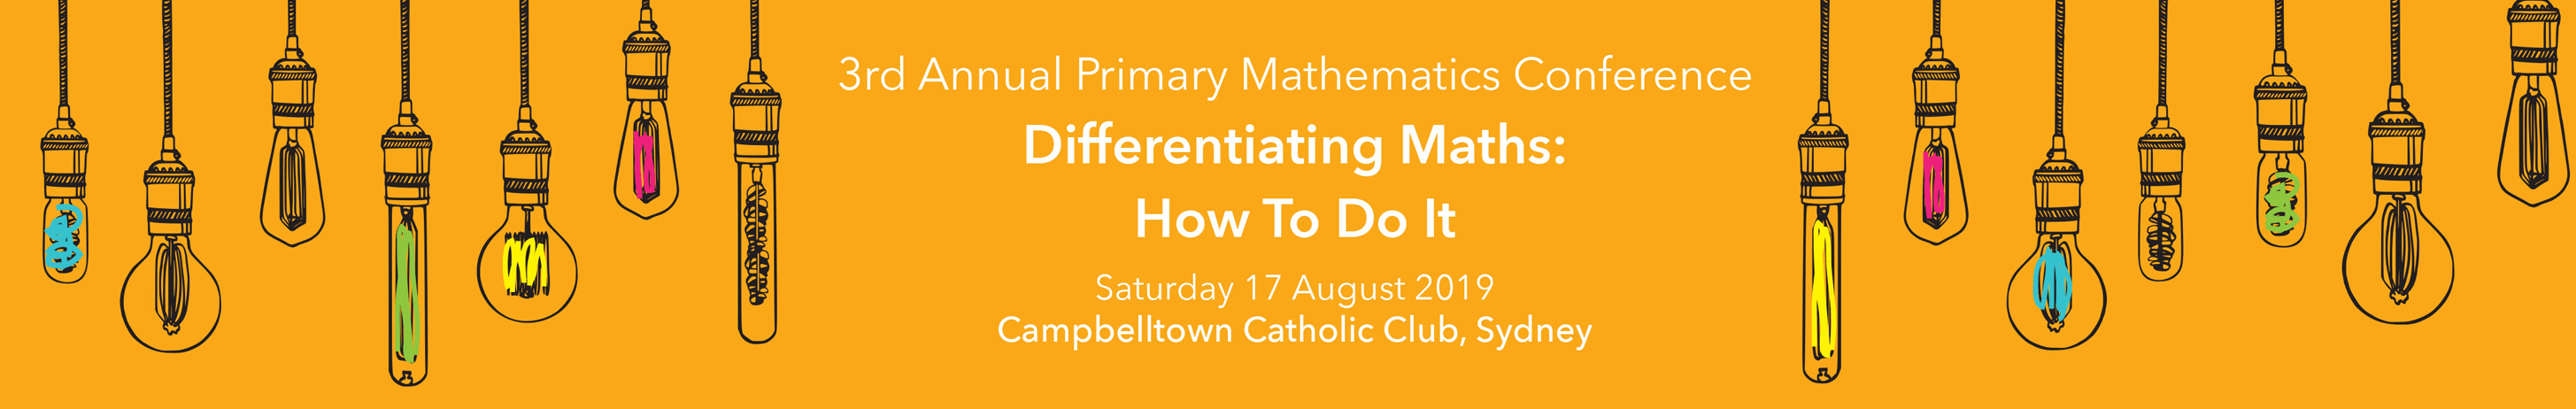 3rd Annual Primary Mathematics Conference | Differentiating Maths: How To Do It | Saturday 17 August 2019 | Campbelltown Catholic Club, Sydney